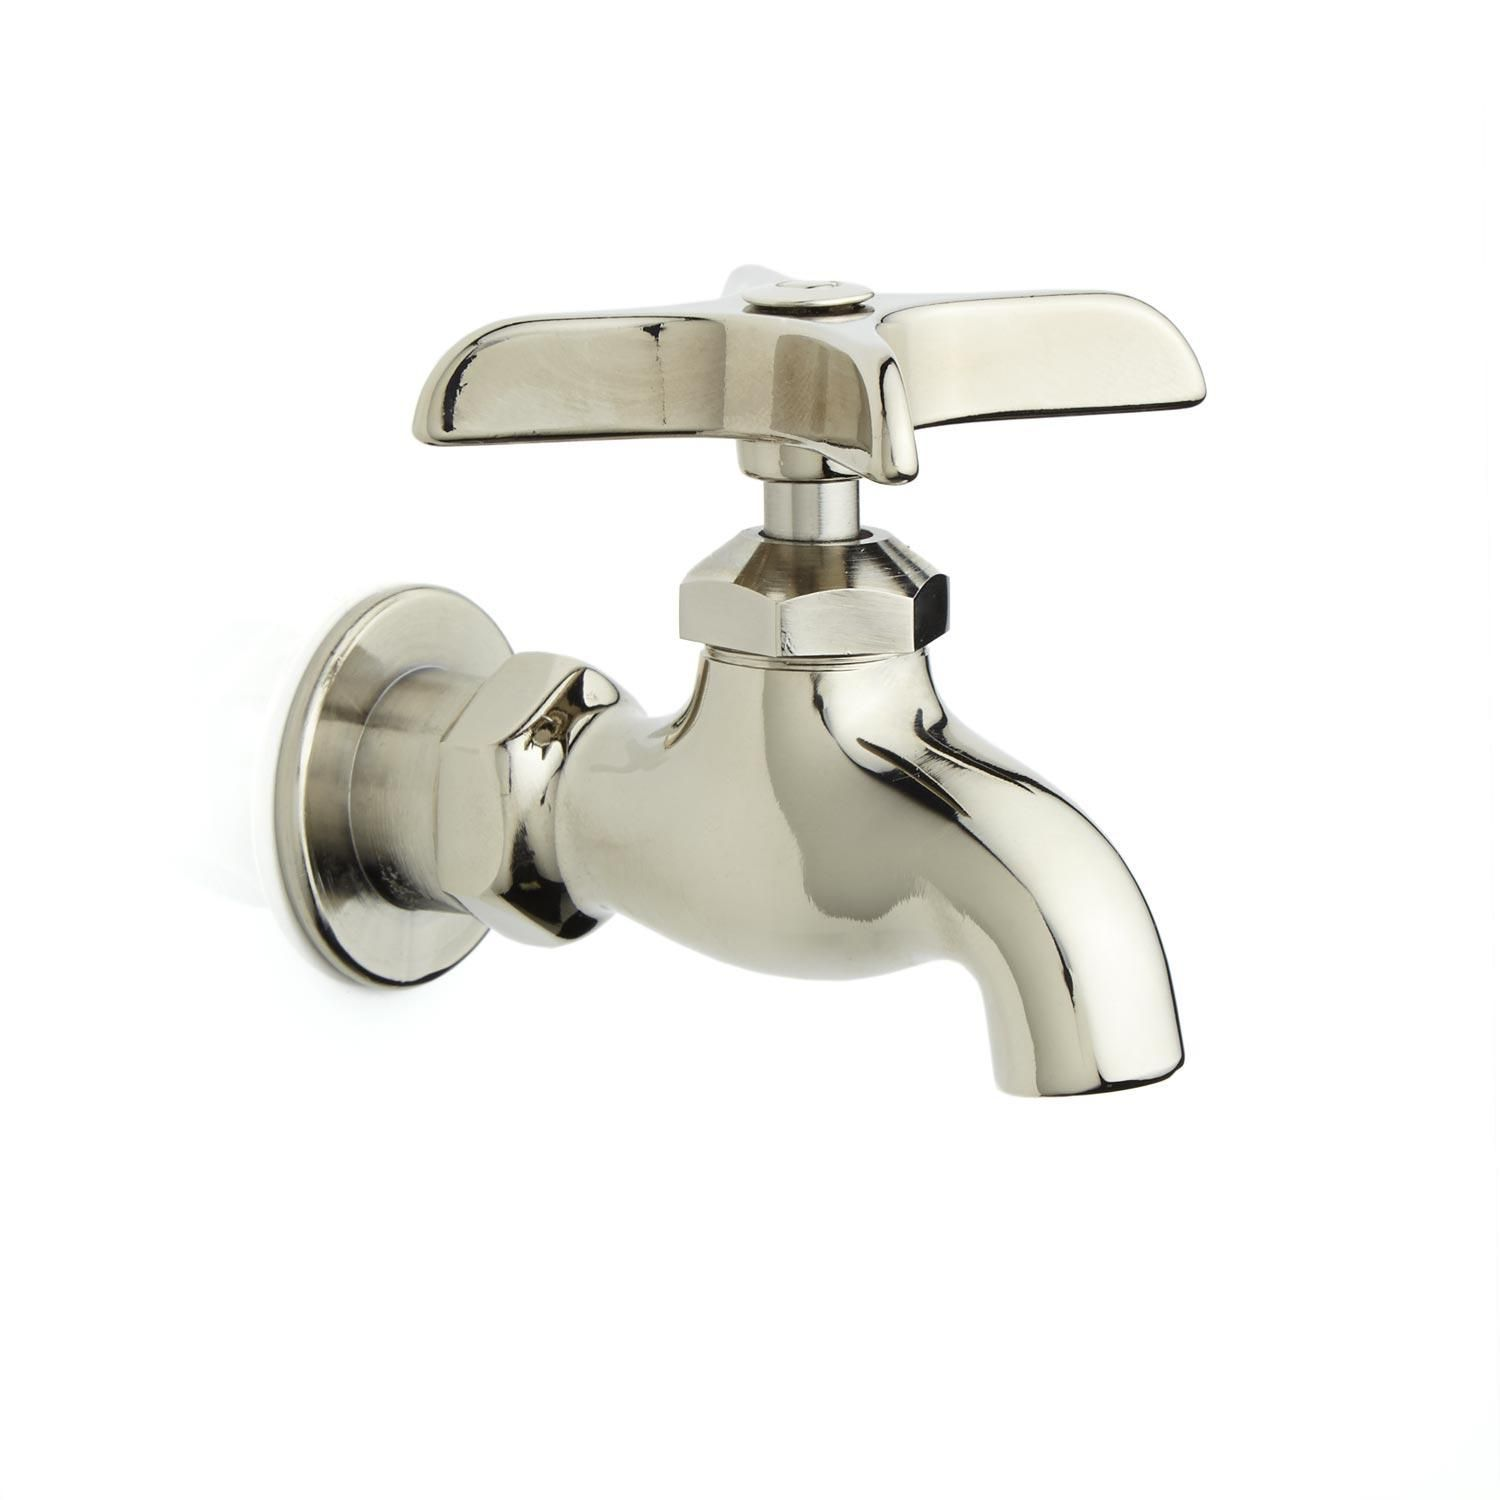 Single wallmount faucet with cross handle wall mount faucet